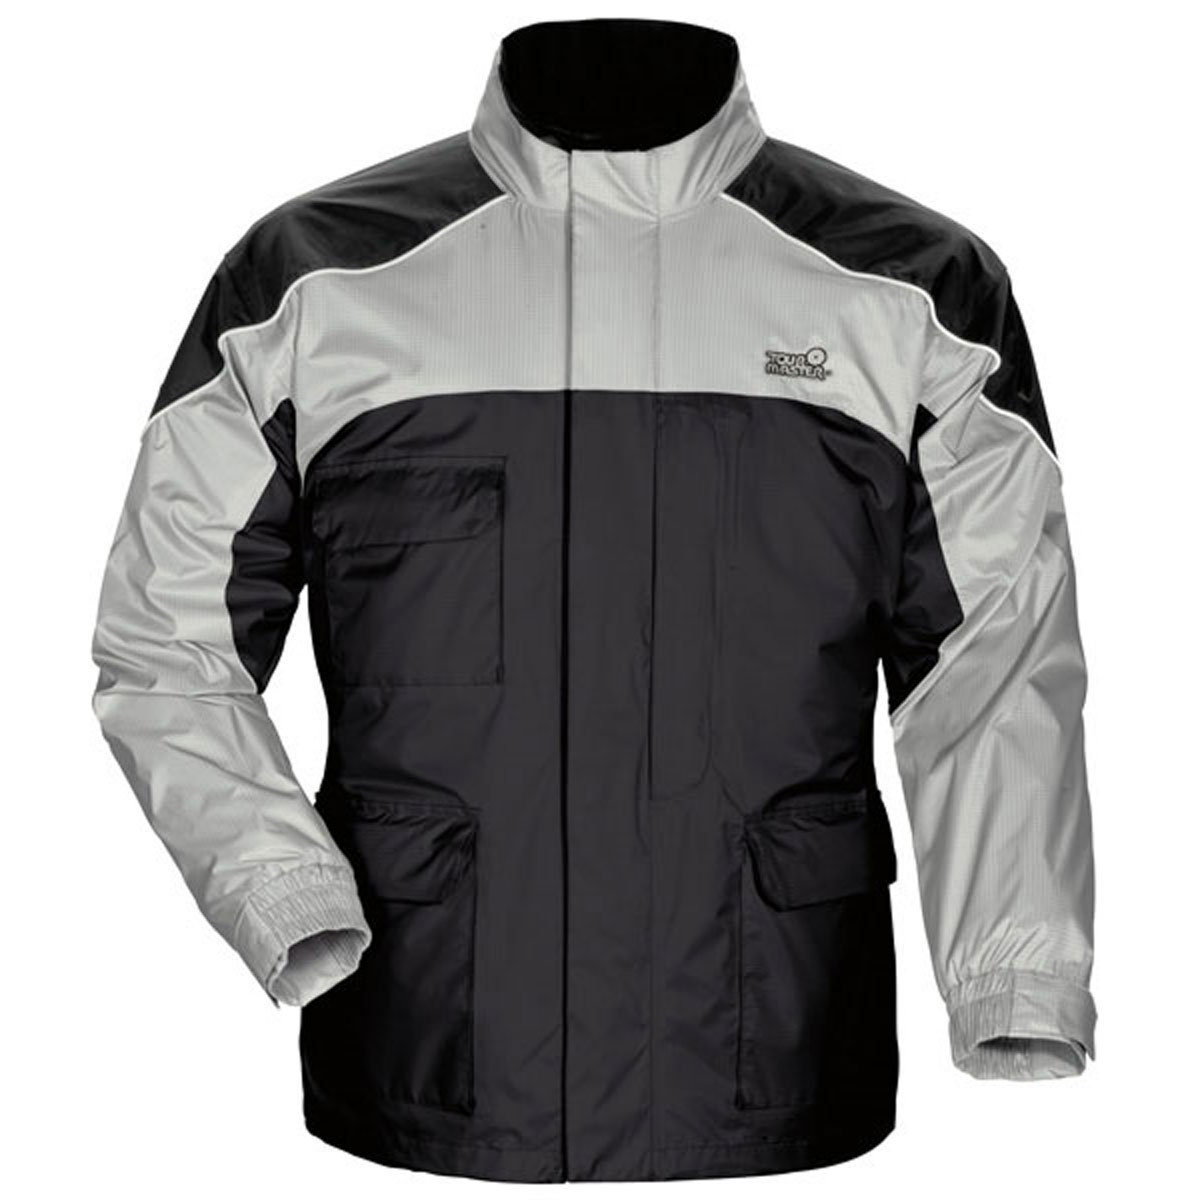 Tour Master Sentinel Men's Jackets Sports Bike Racing Motorcycle Rain Suit - Black / X-Small by Tourmaster (Image #1)